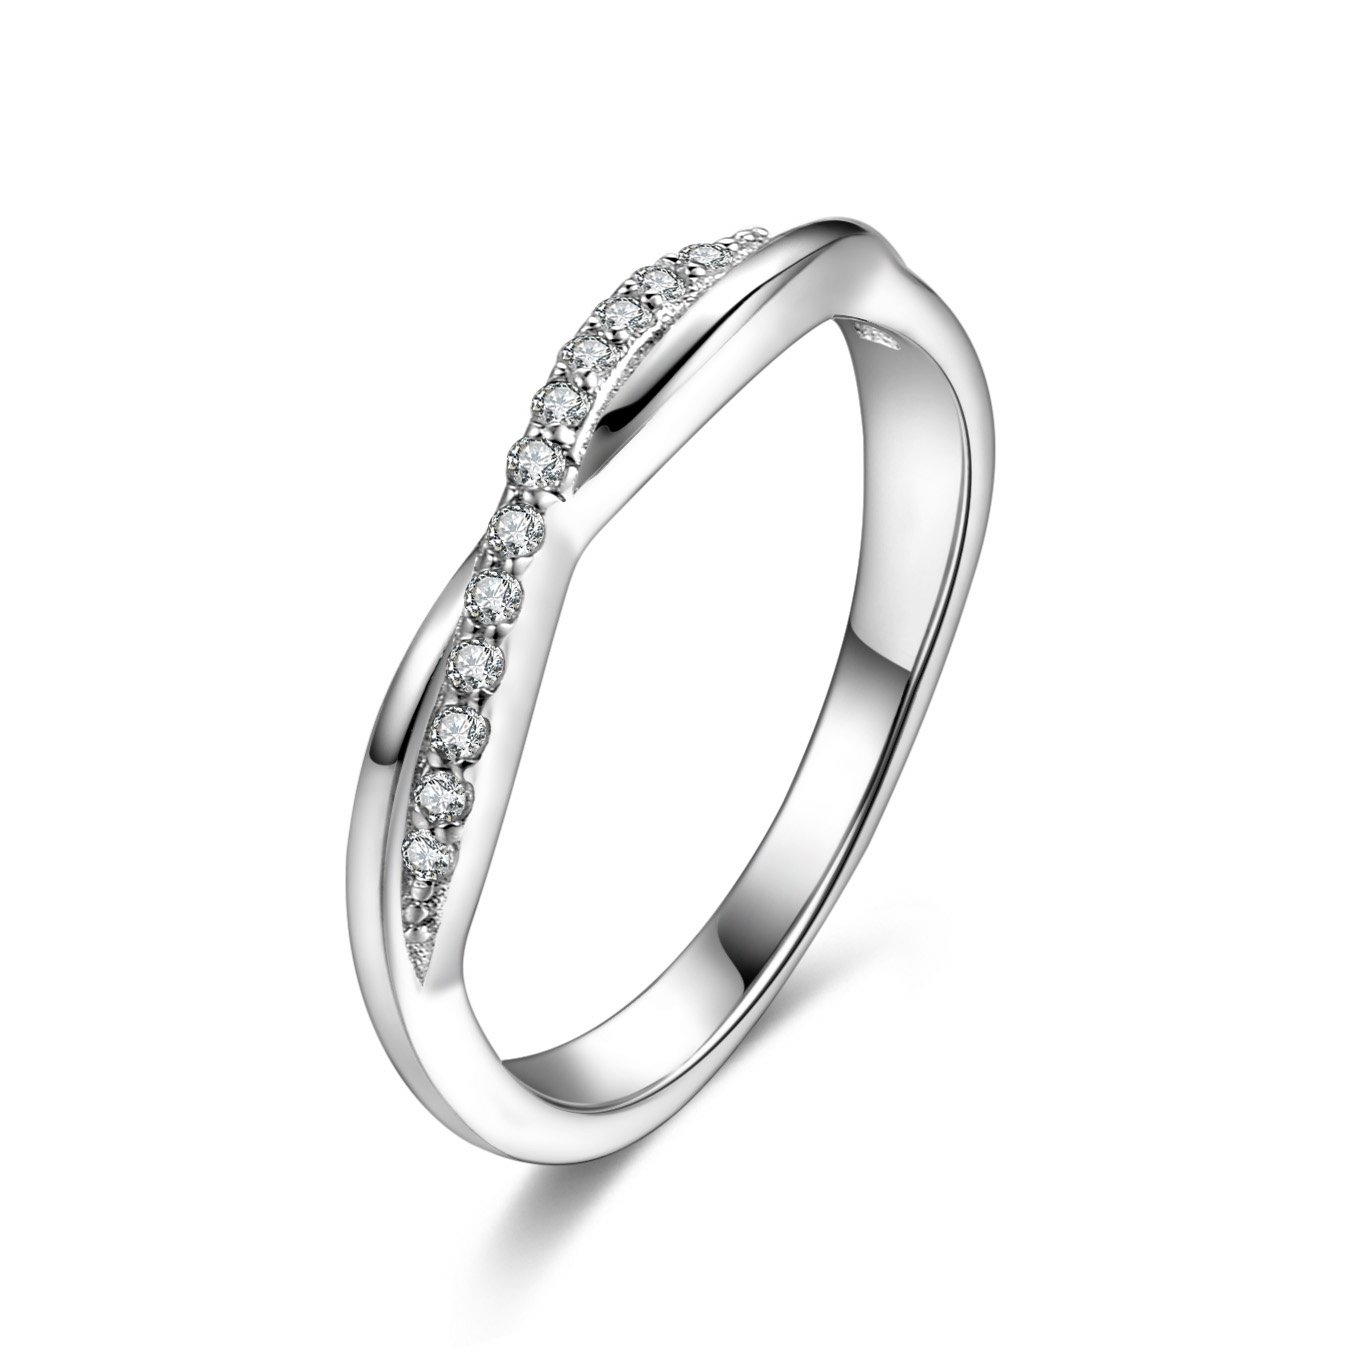 Infinity Love Cubic Zirconia 925 Sterling Silver Stackable Endless Eternity Ring Band Size 7